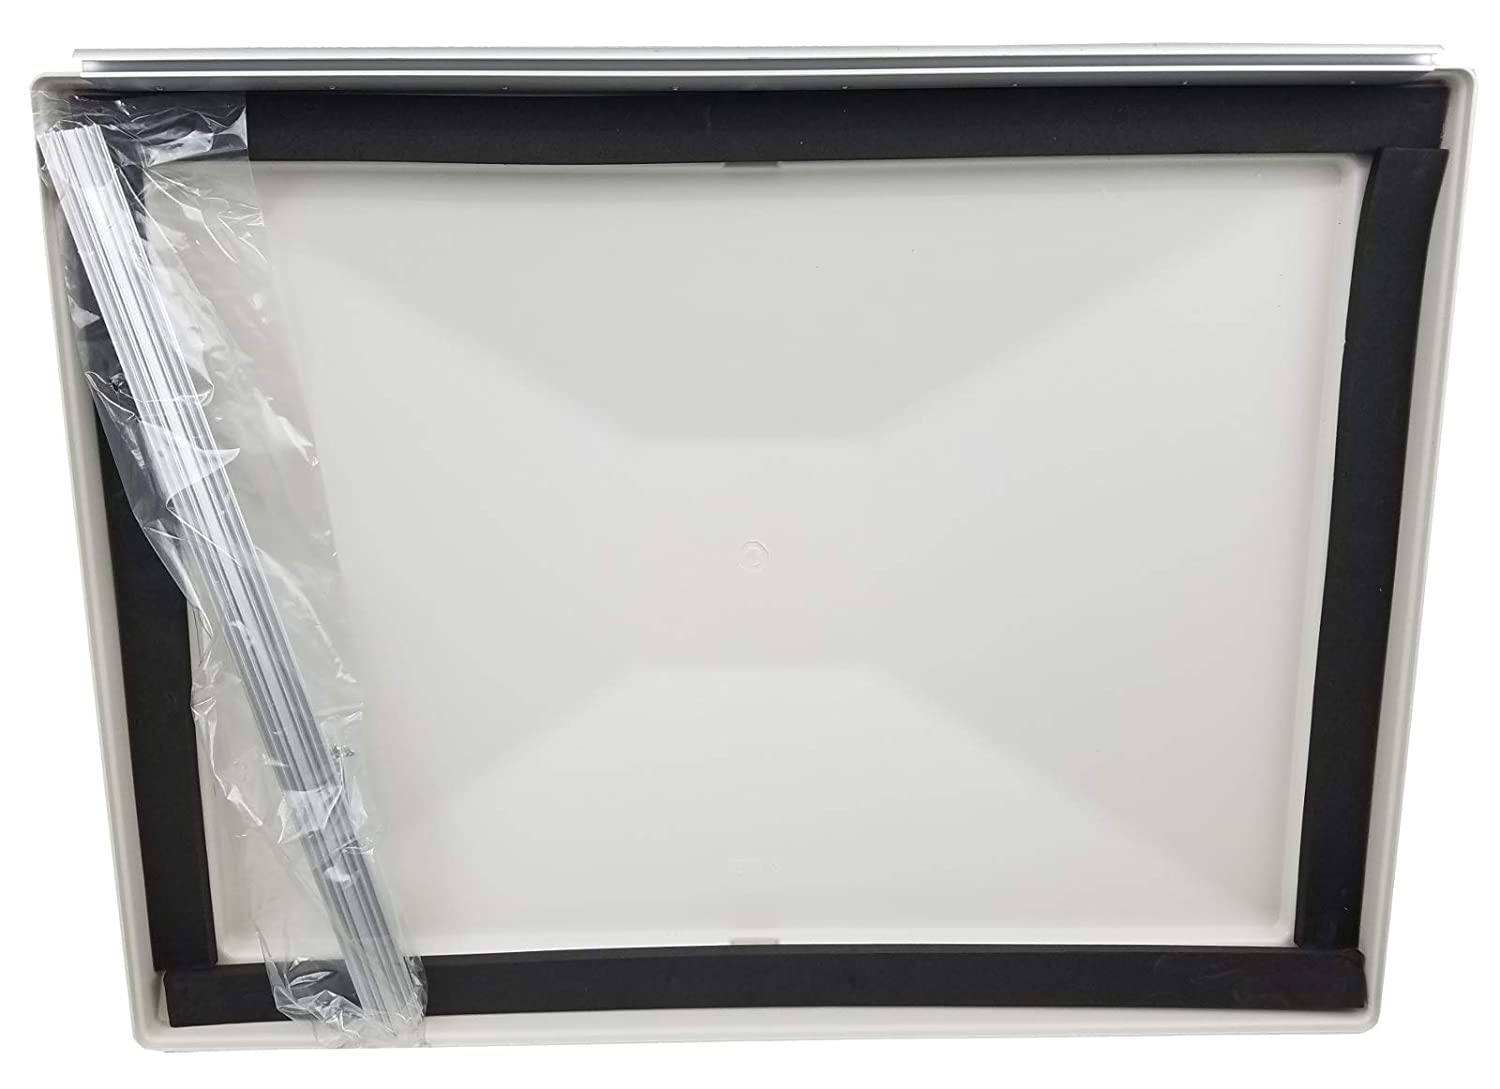 Heng's 90088-C1-LO Escape Hatch LID ONLY fits Current Model 48621-C2 rv Camper Trailer Roof Heng' s